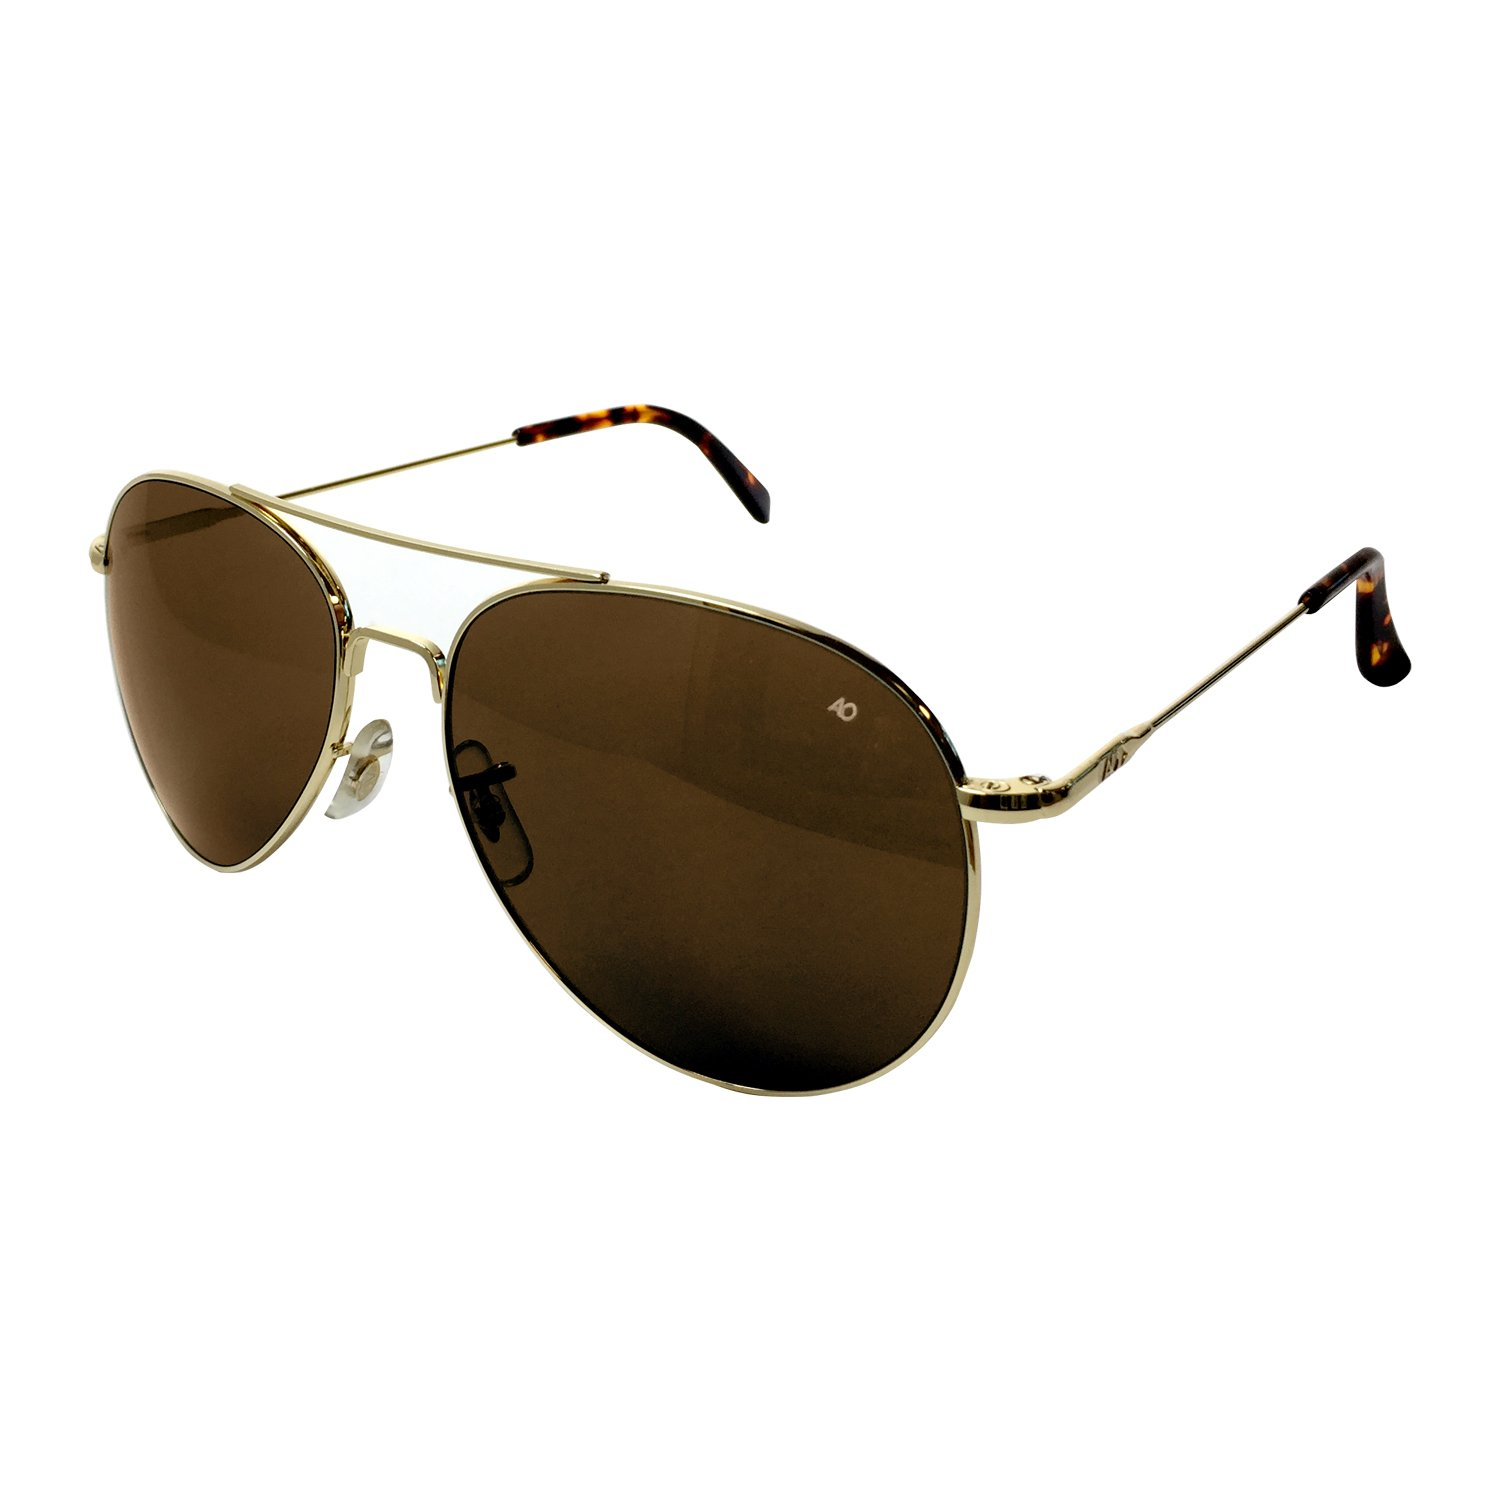 AO Eyewear American Optical - General Aviator Sunglasses with Wire Spatula Temple and Gold Frame, Cosmetan Brown Glass Lens